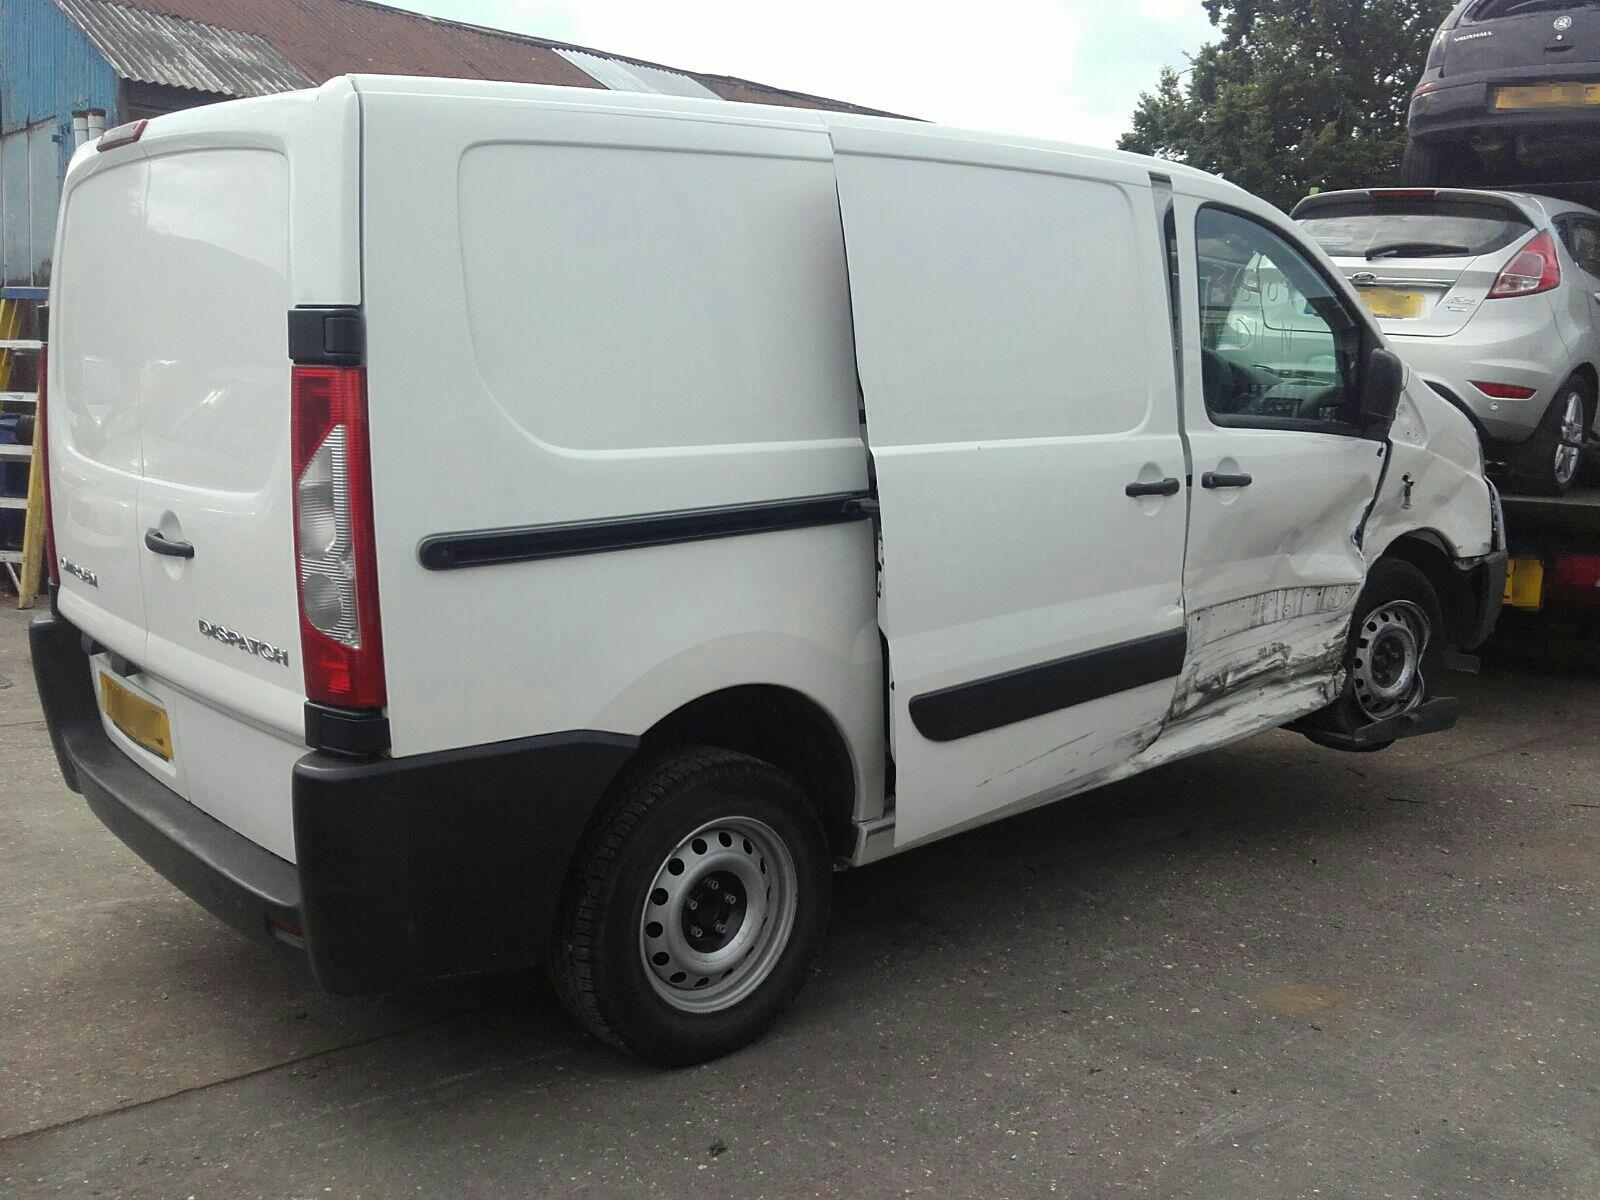 Citroen Dispatch Combi 2011 To 2016 L1H1 90 6 Seats HDi M.P.V.